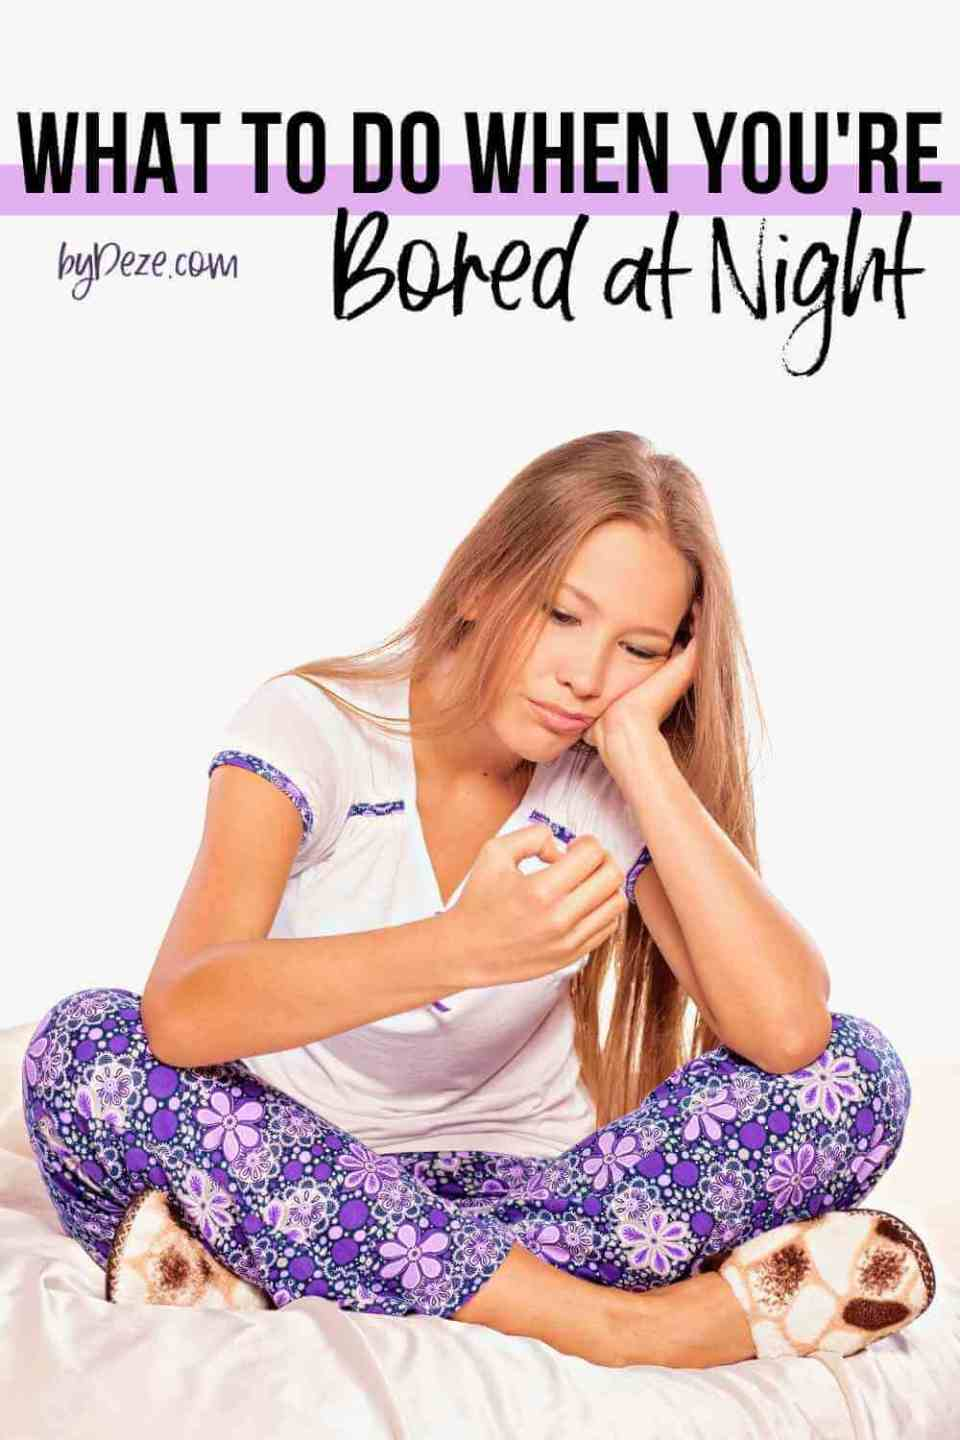 things to do when bored at night - girls with pajamas on in bed looking bored.